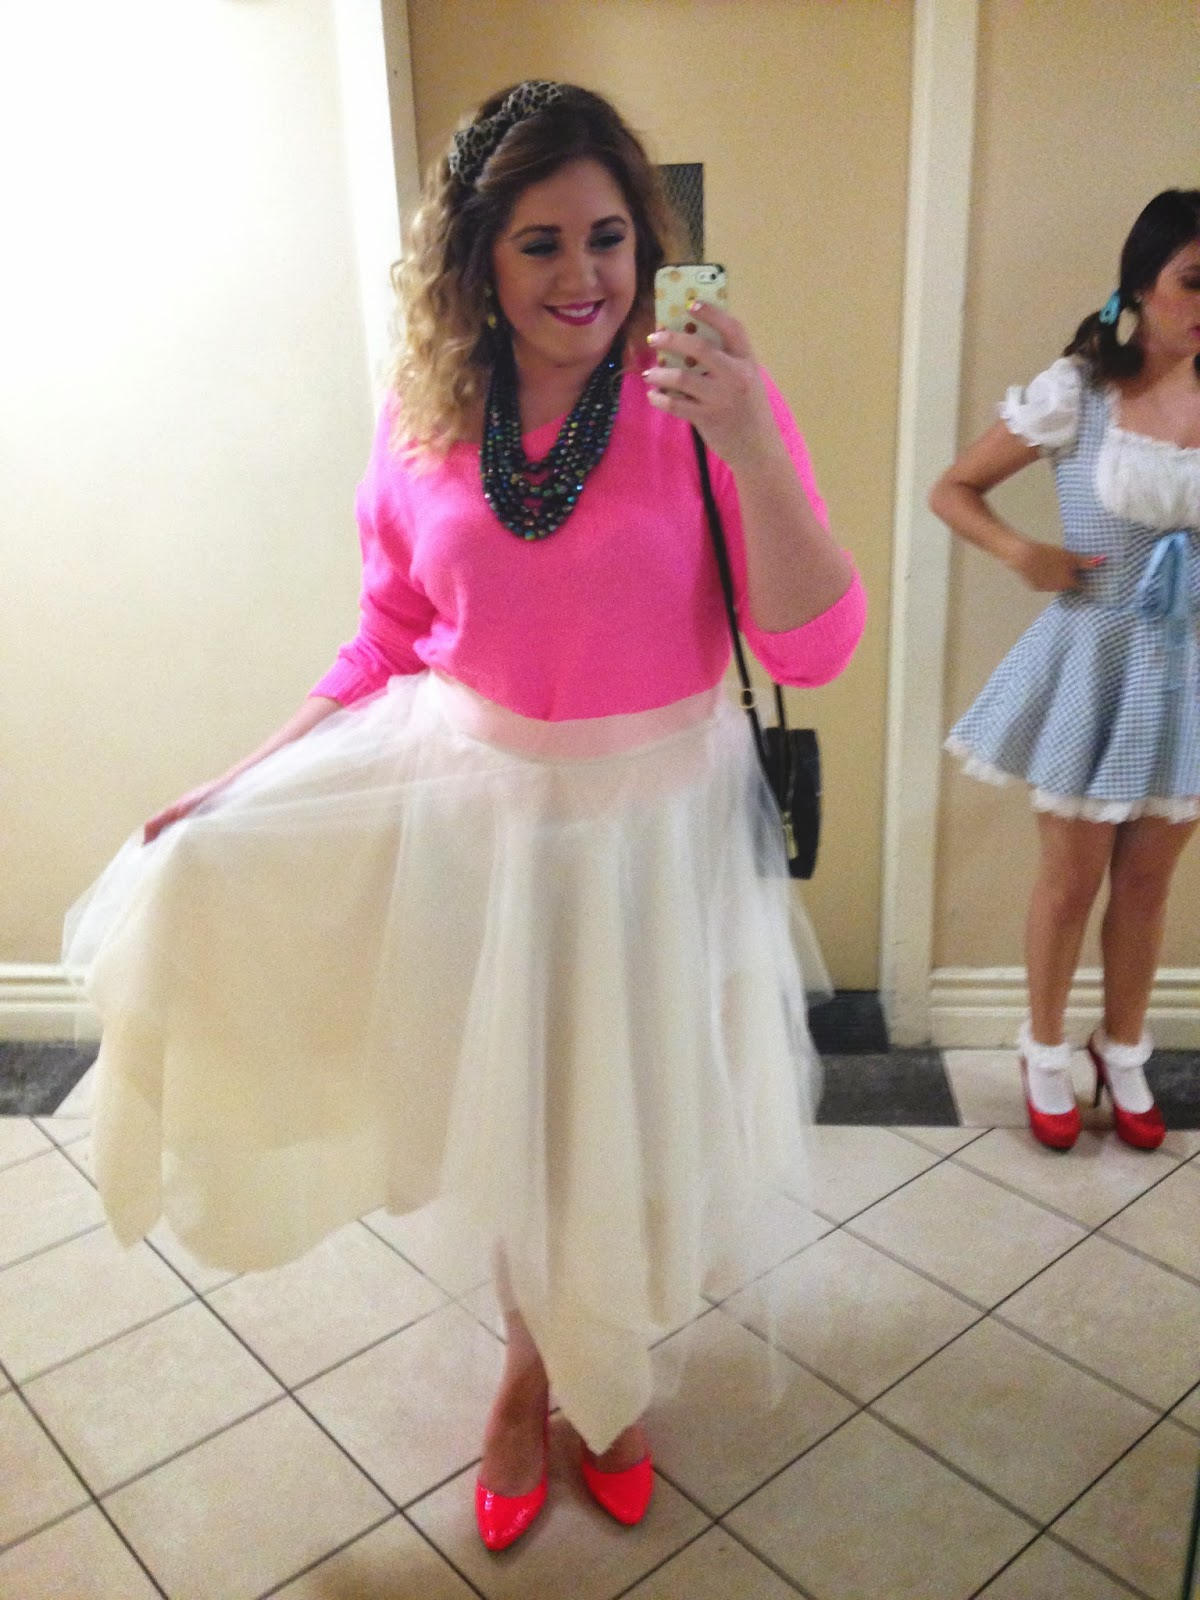 Halloween Channeling Carrie Bradshaw  sc 1 st  wander abode & Halloween: Channeling Carrie Bradshaw - wander abode